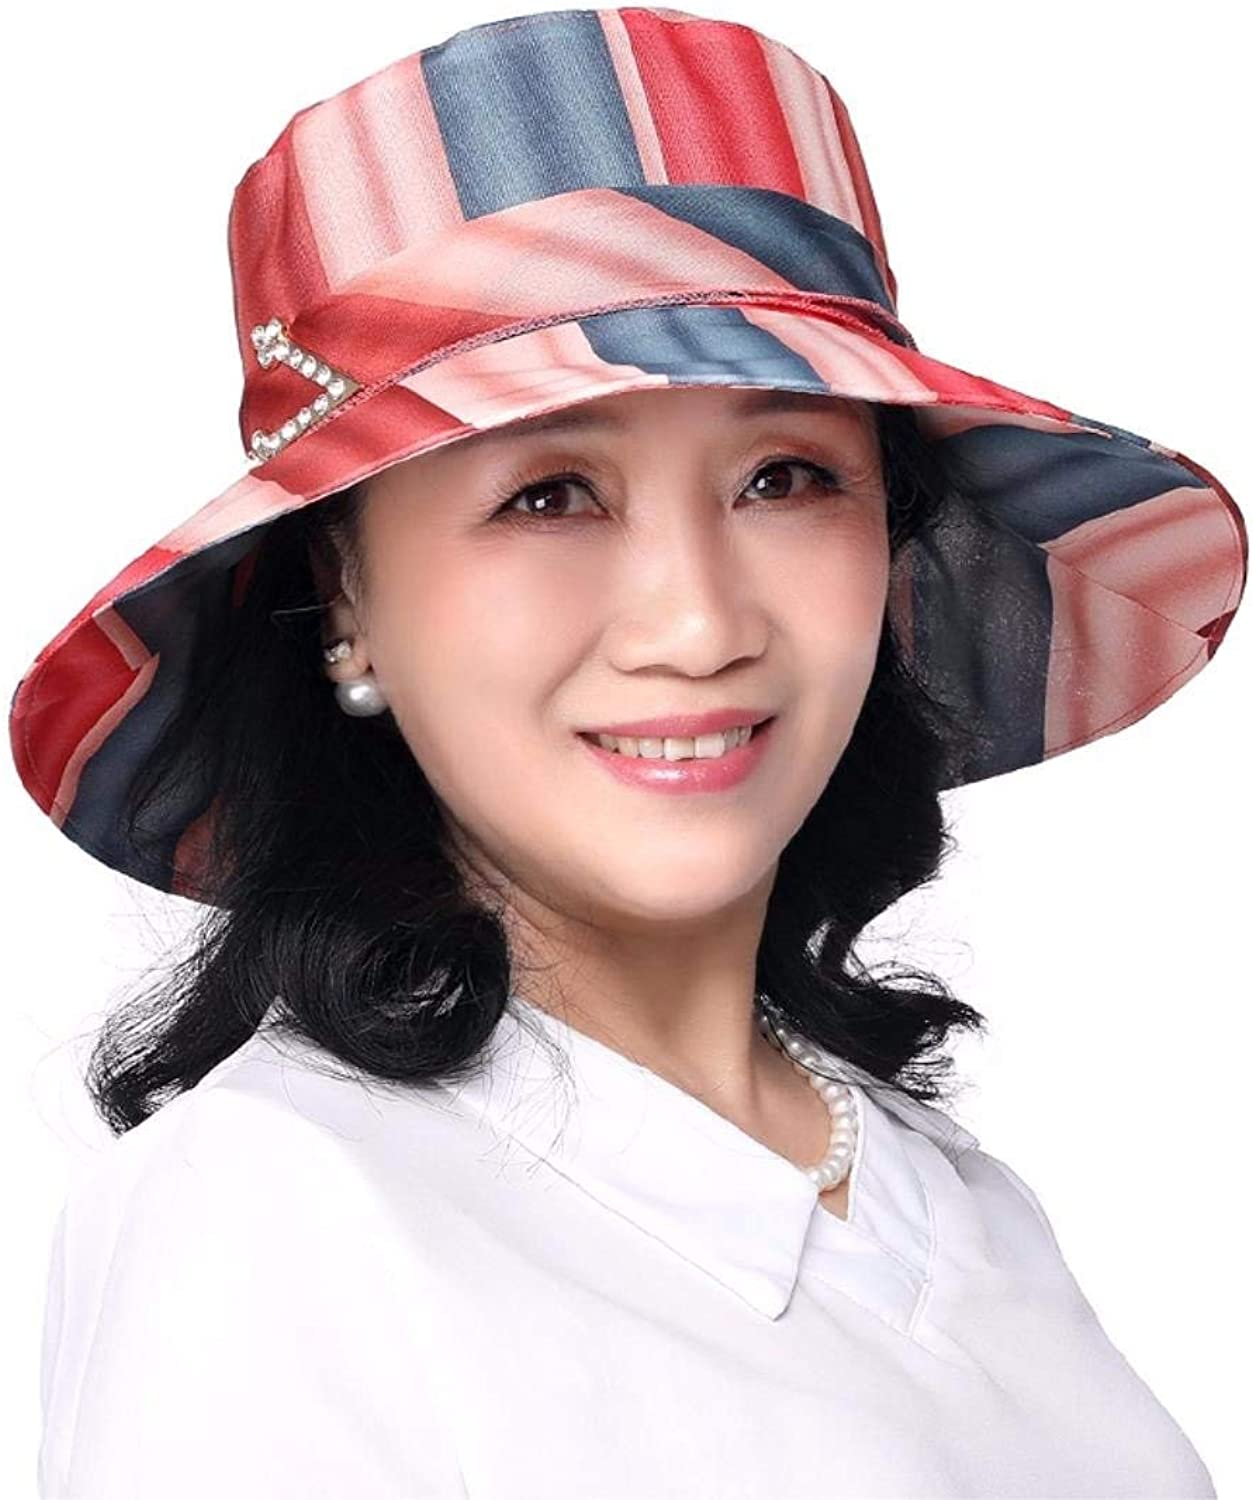 Dianye Gift for Mom Gift for grandmother Bonnet Hat summerutumn hat middleaged hatloth hateach Hat travel hat outdoor hat